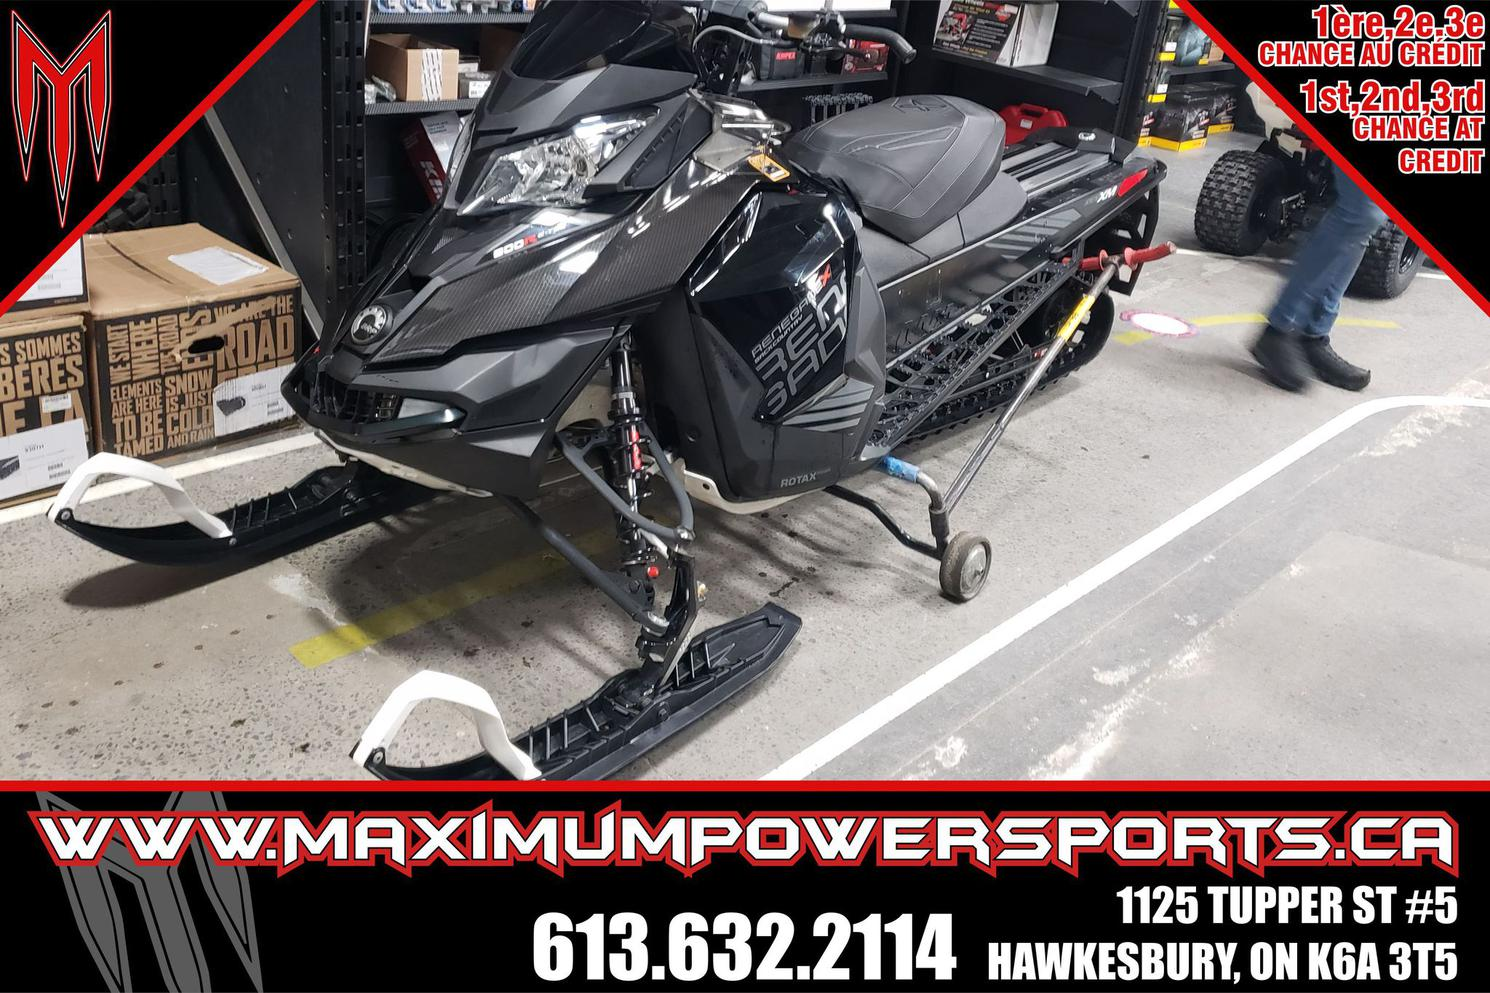 2017 Ski-Doo RENEGADE 800 BACKCOUNTRY X E-TEC (REV-XM) R* RENEGADE 800 BACKCOUNTRY X E-TEC (REV-XM) R*